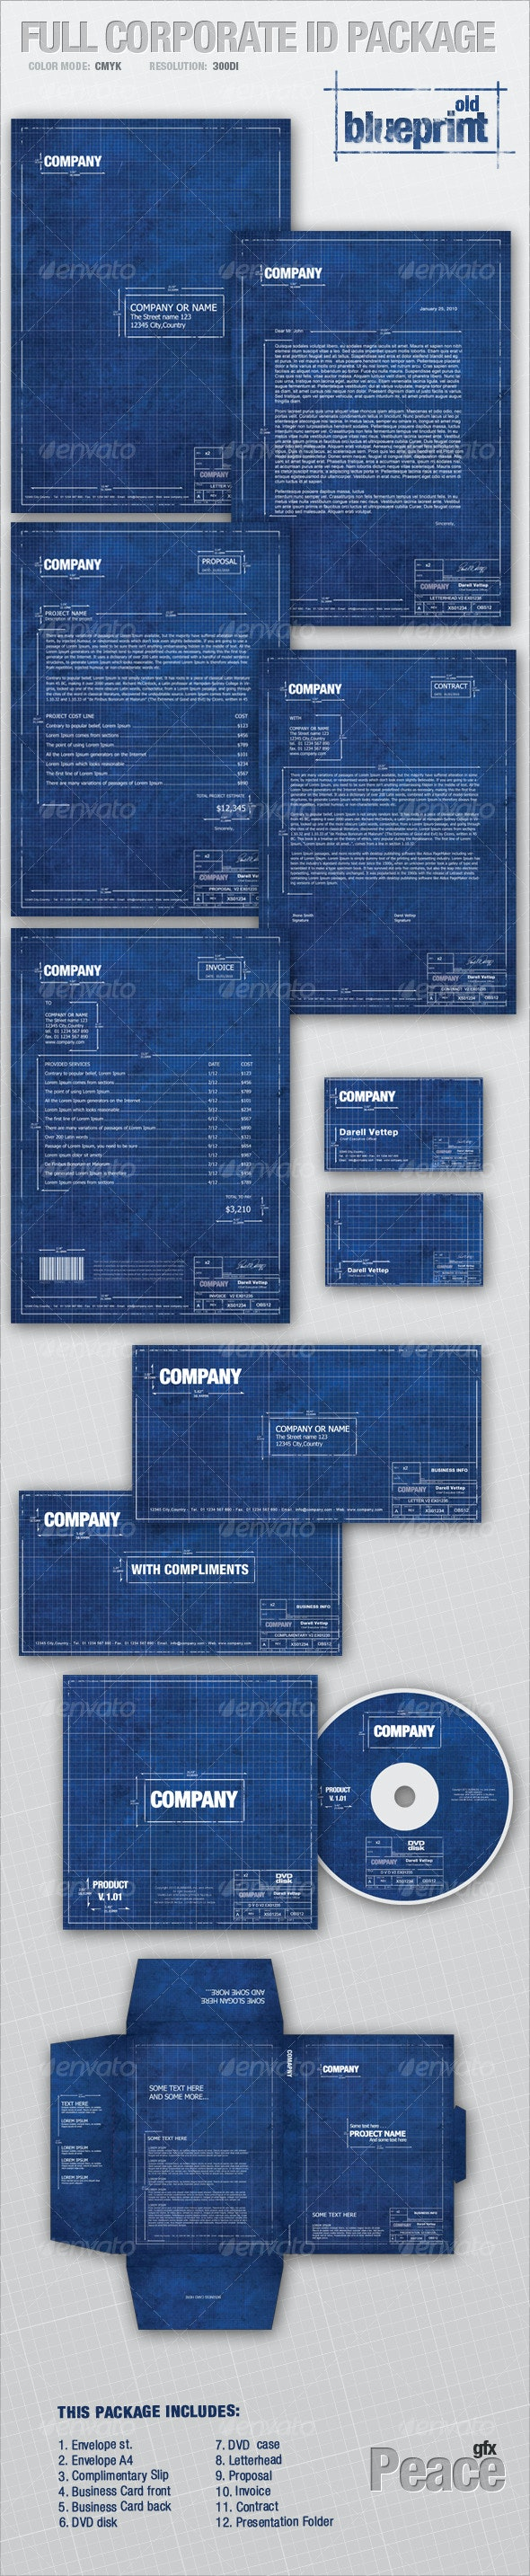 Full Corporate ID Package - old BLUEPRINT - Stationery Print Templates